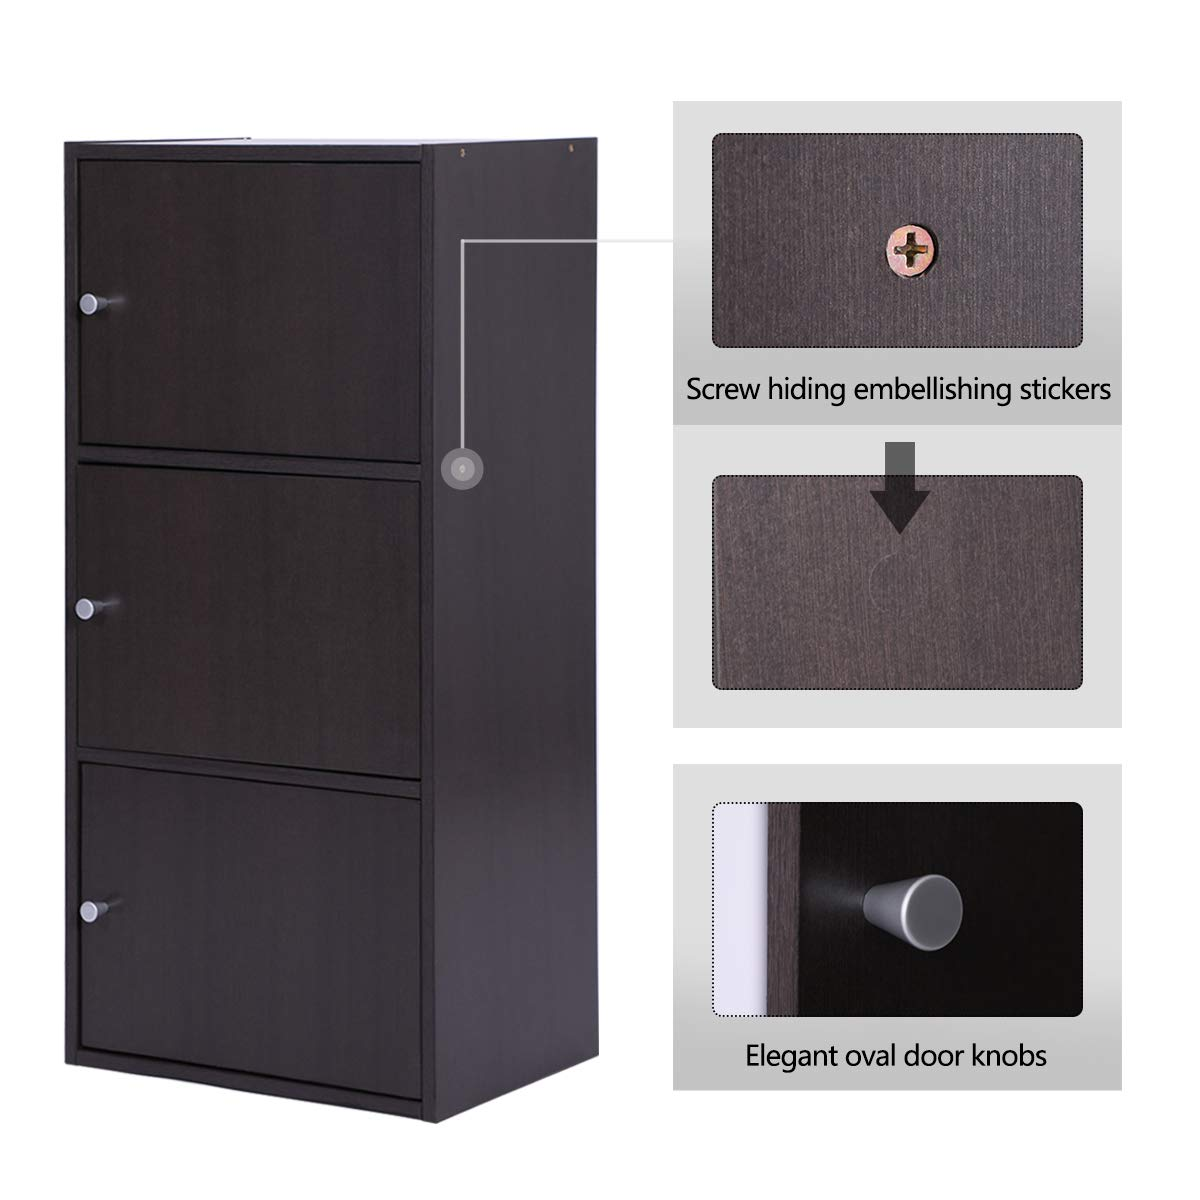 Multifunctional Storage-Cabinet with 3 Magnetic Doors Classic Modern Bookcase Home Office Vertical File Cabinets, Espresso Brown-CAS011 by Coavas (Image #2)